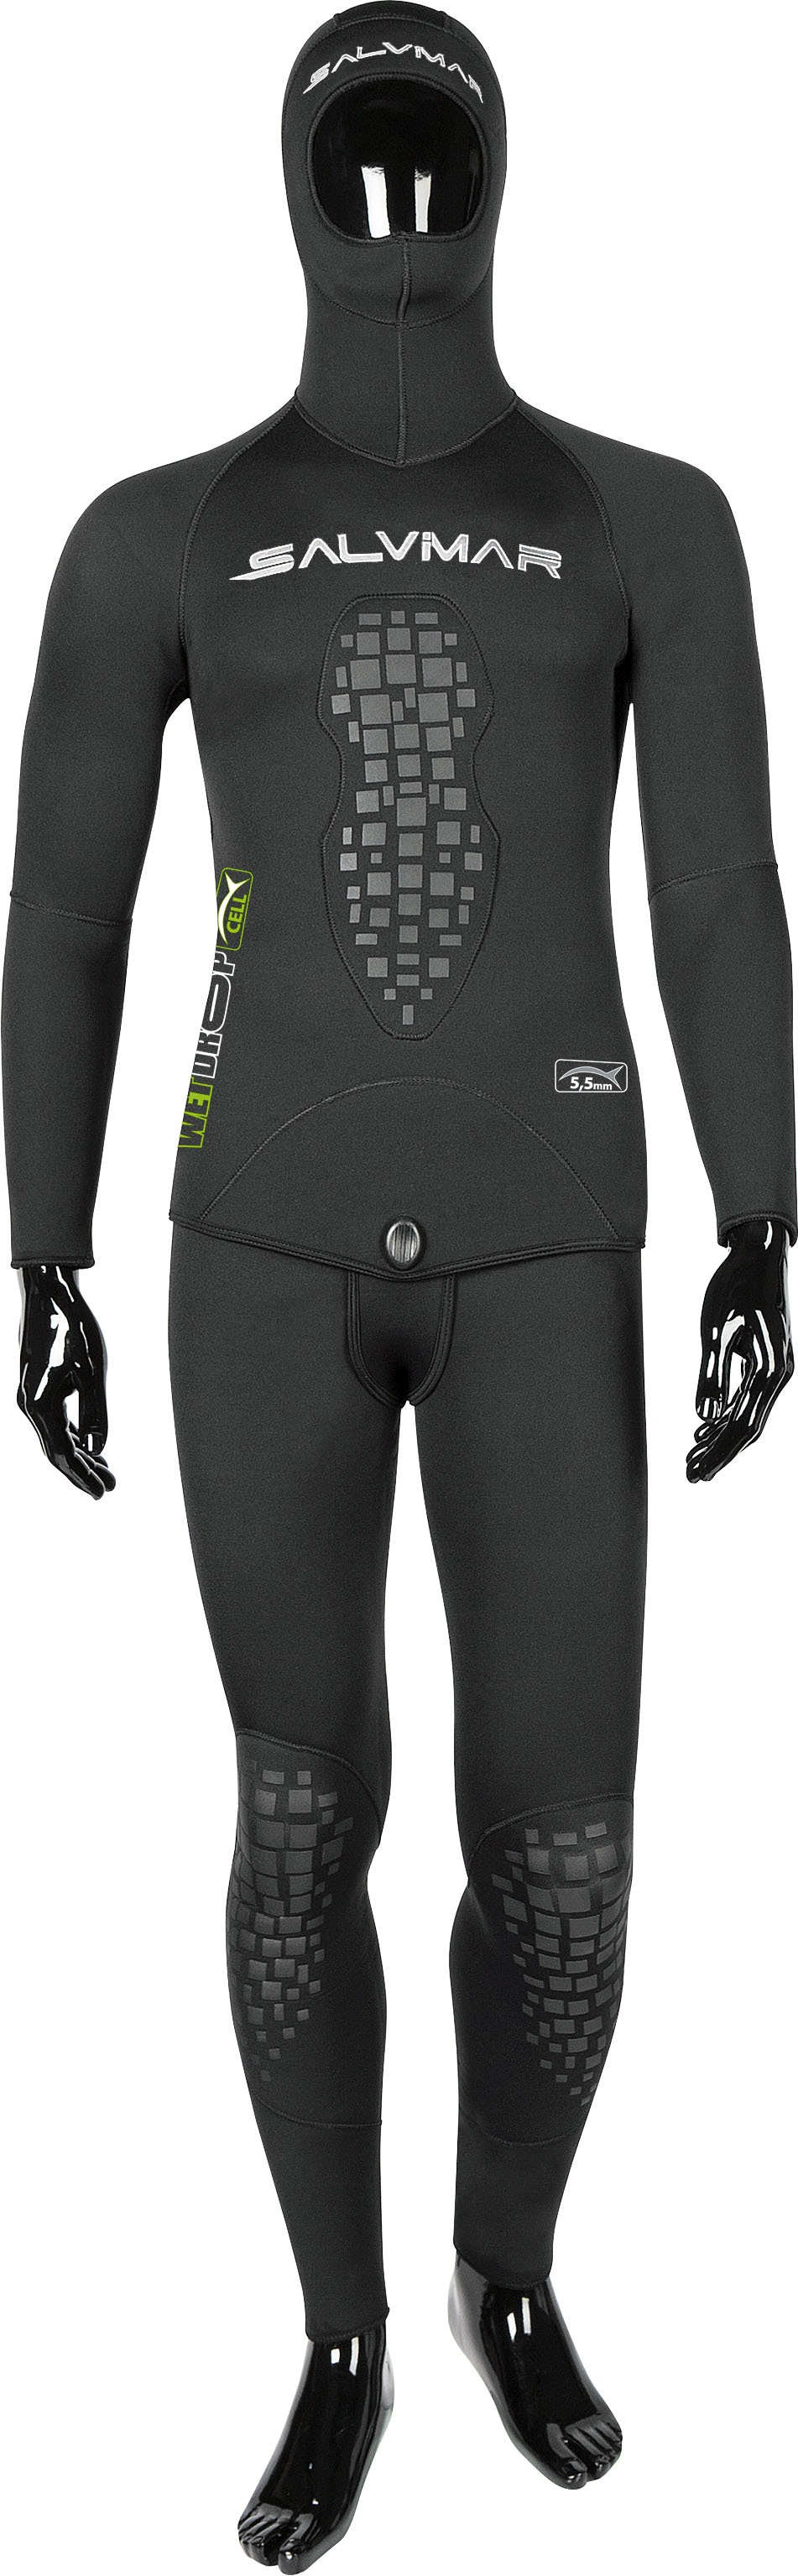 Salvimar freediving suit